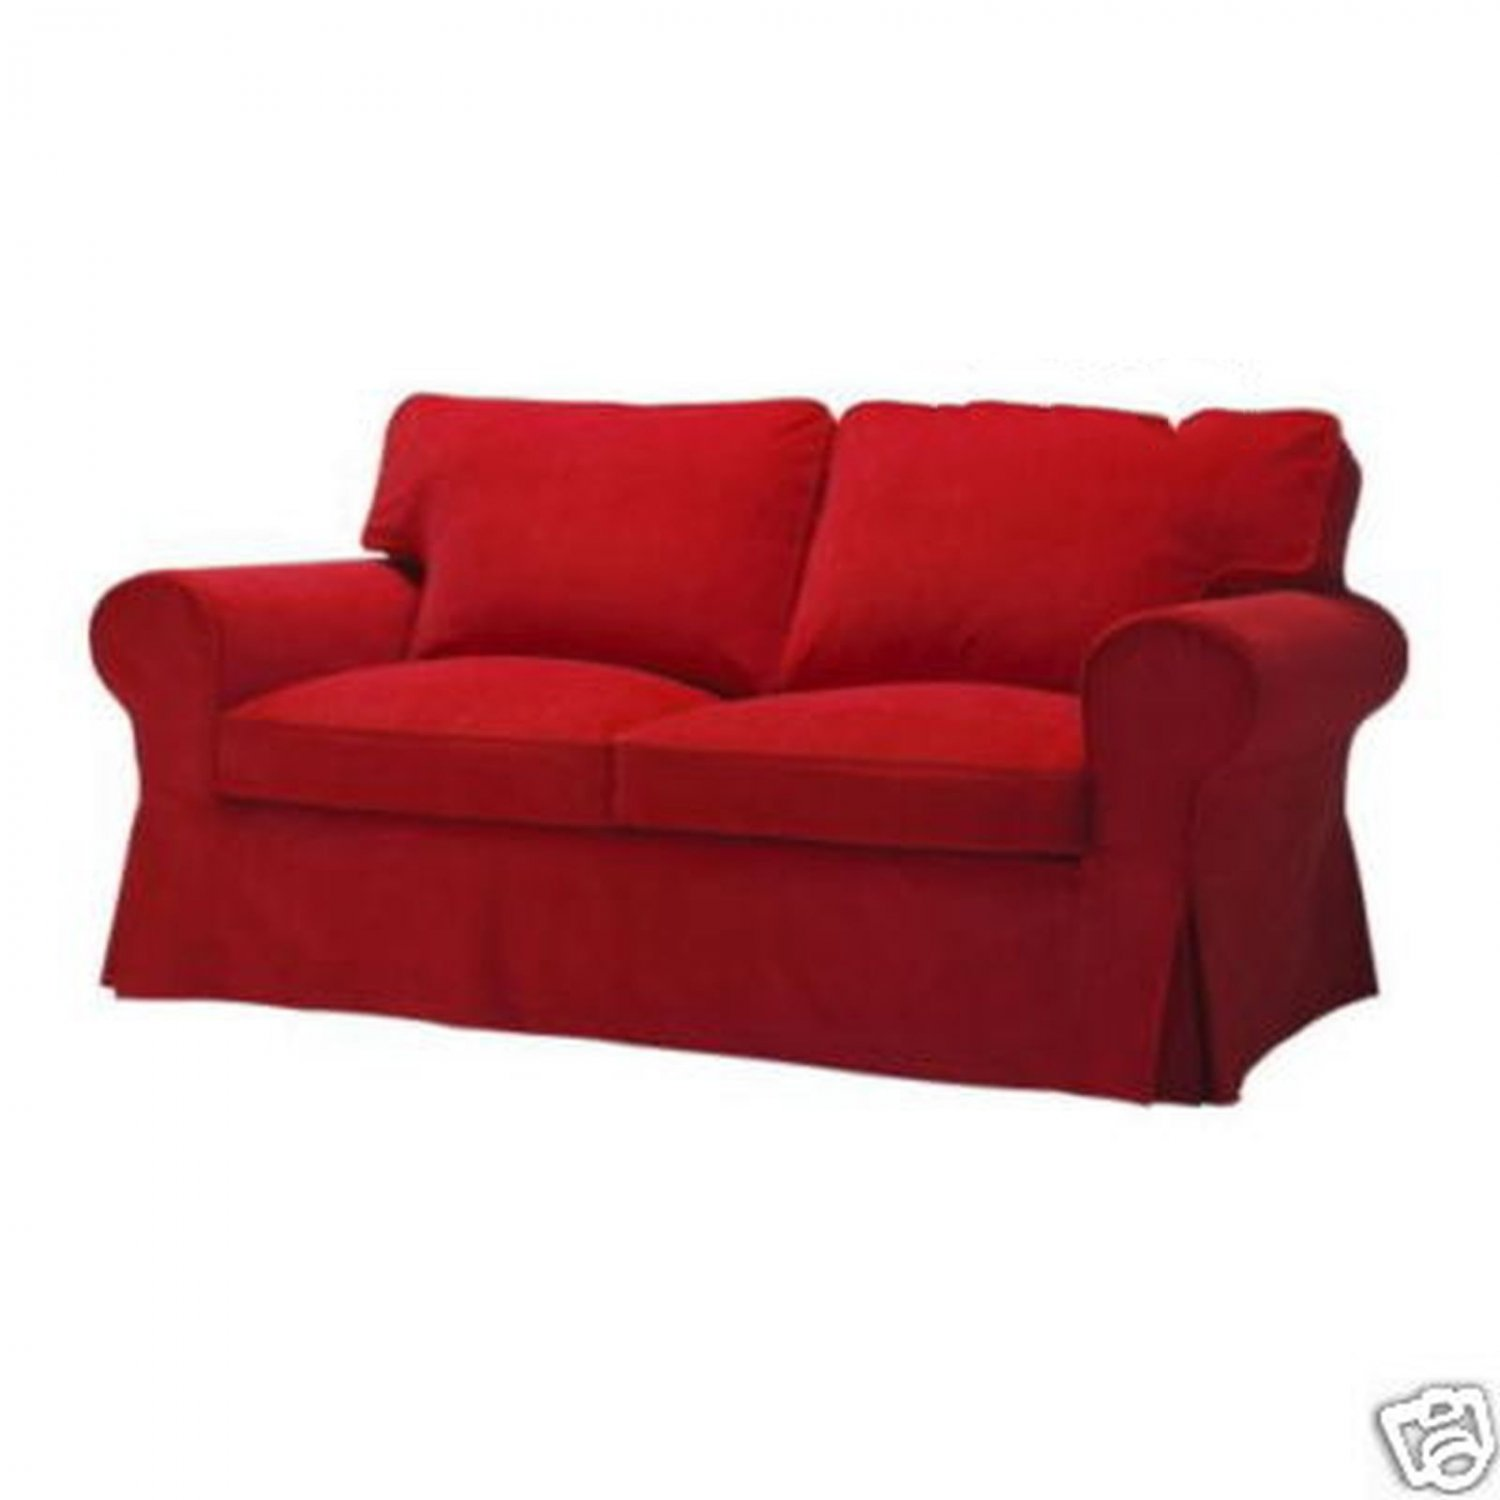 Ikea Ektorp 2 Seat Loveseat Sofa Slipcover Cover Leaby Red Corduroy Xmas Limited Edition Last One